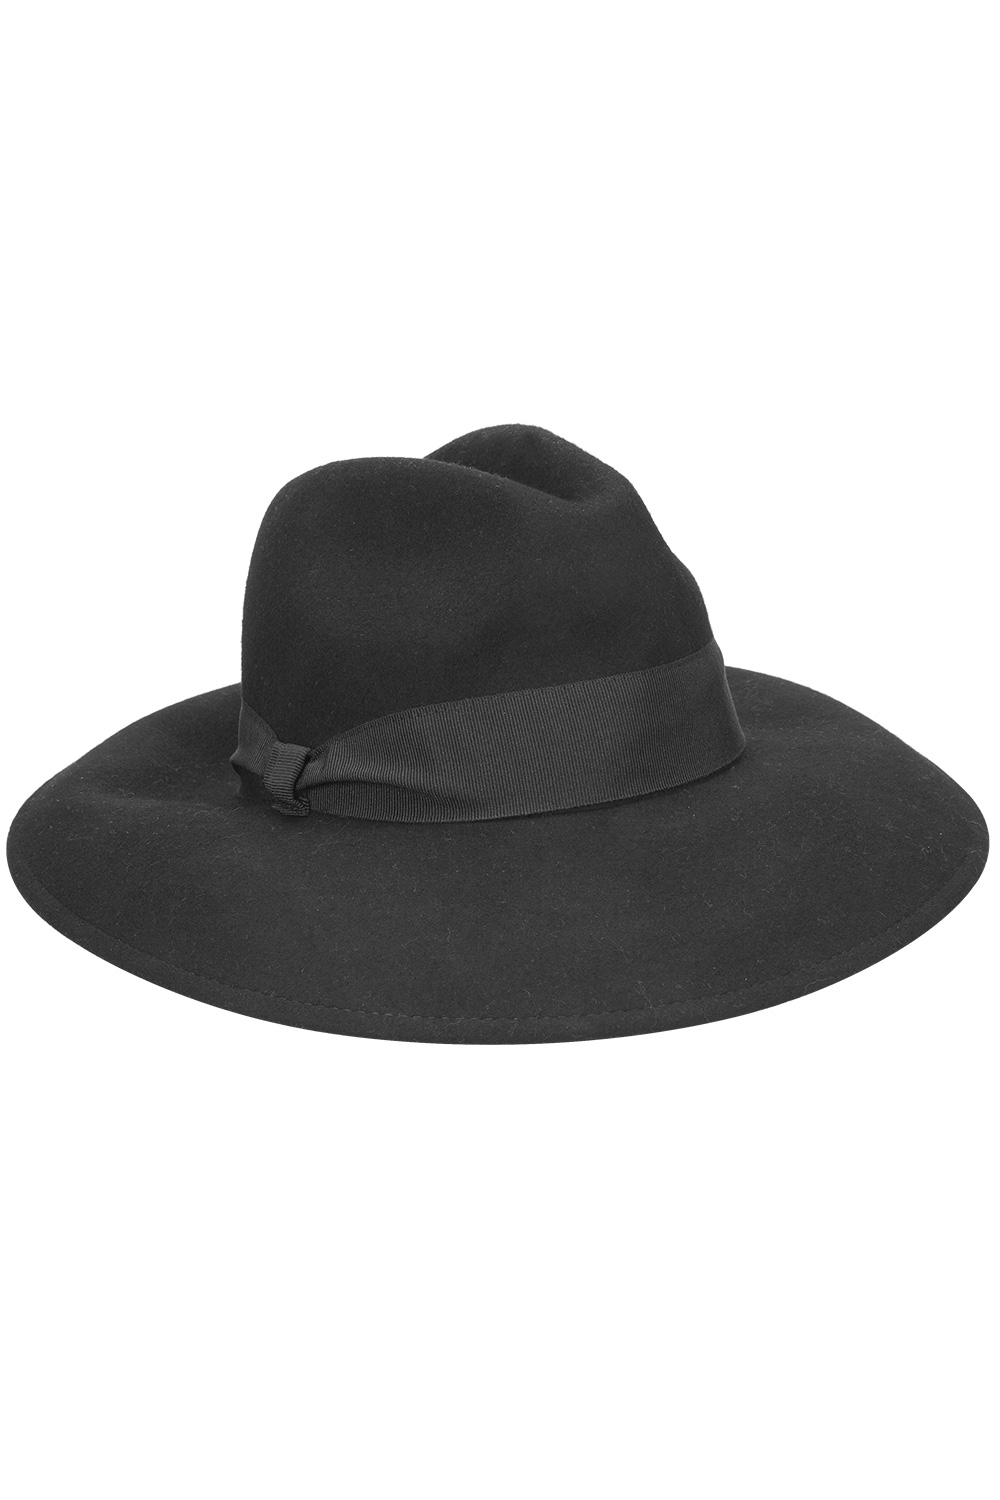 Overstock uses cookies to ensure you get the best experience on our site. Women's Kentucky Derby Church Wedding t Organza Hat Black. Quick View $ 49 Ferrecci Men's Premium Wool Classic Top Hats. 14 Reviews. Quick View $ 99 Women's Wide Brim Wool Felt Fedora Hat with Braided Band - Black.